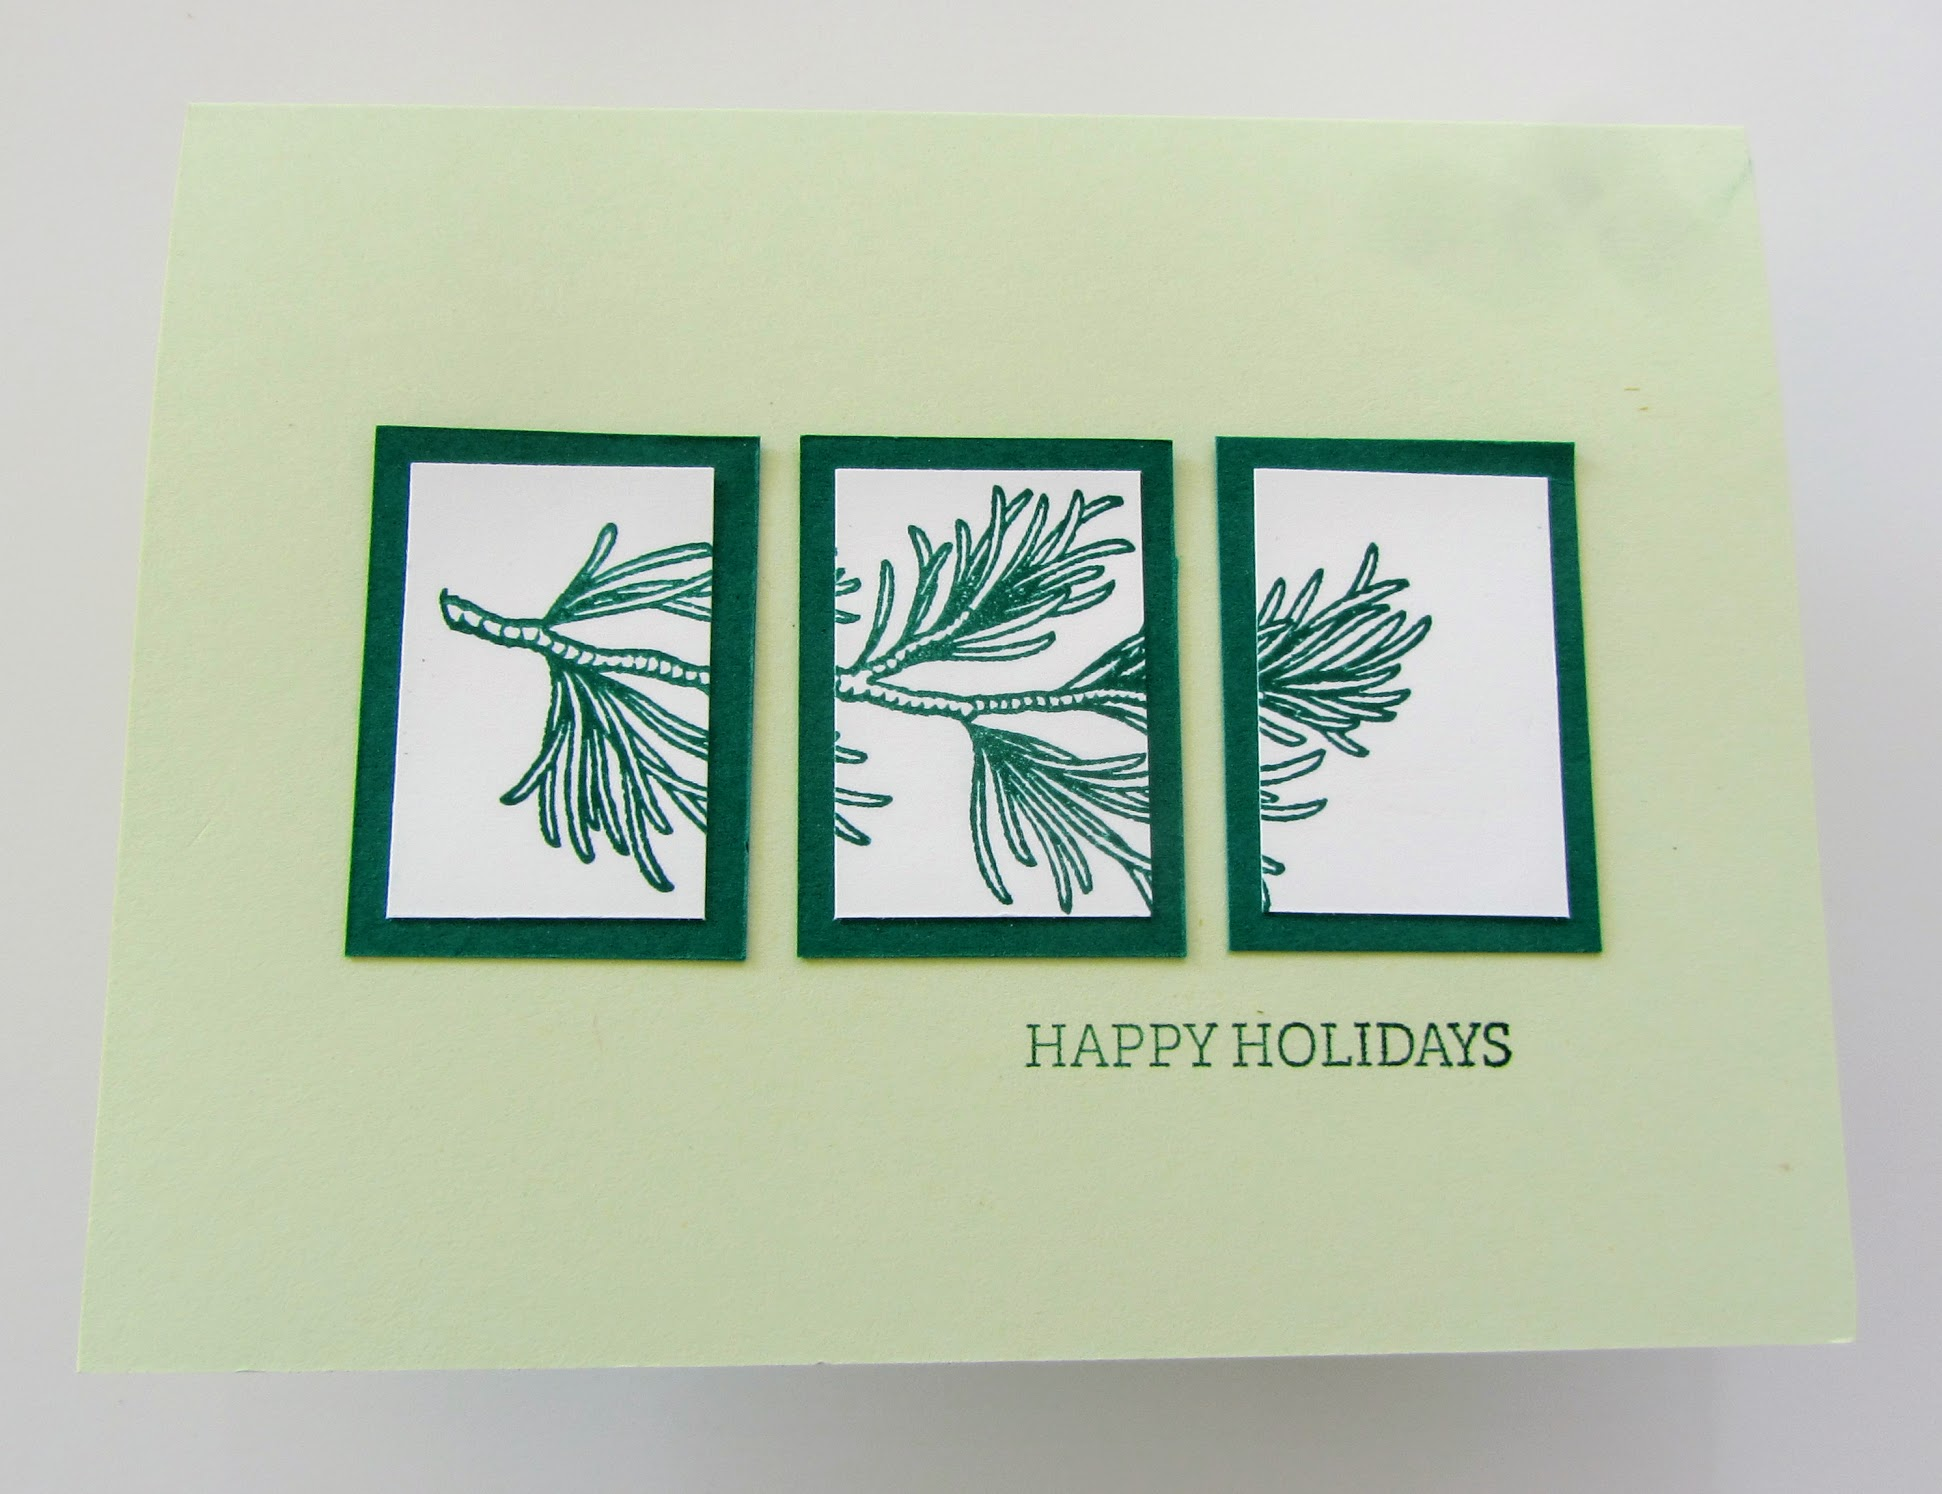 Stampin-Up-Peaceful-Boughs-stamp-set-Itty-Bitty-Christmas-stamp-set-Christmas-Card-Debra-Simonis-Stampinup